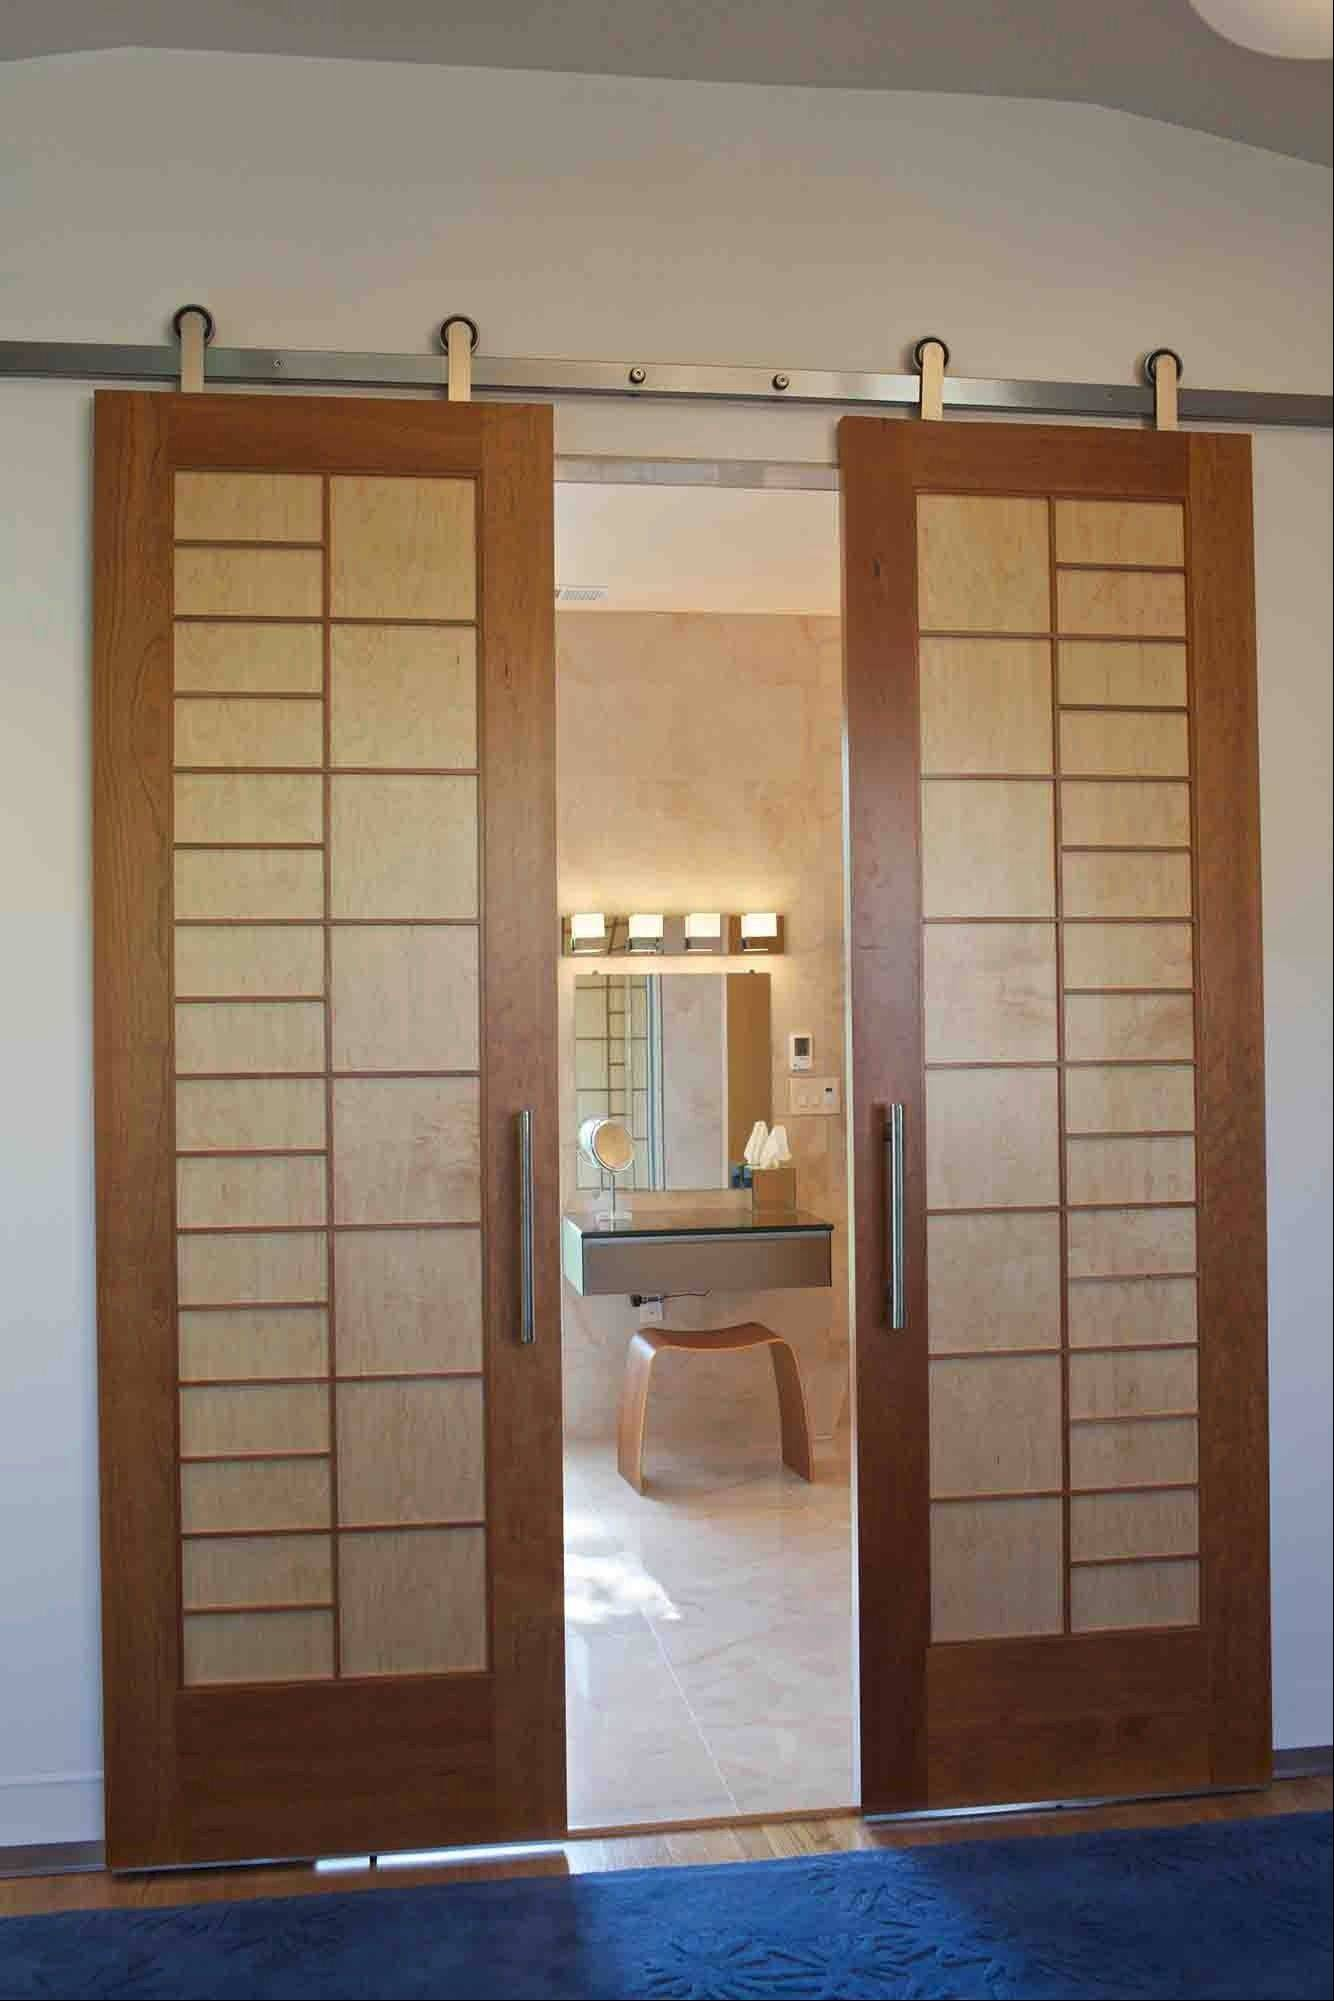 A pair of 8-foot tall doors serve as the entrance to the master bathroom. They slide open on barn door hardware purchased online through Krown Lab, a small company in Oregon. The doors were purchased online and custom made through Cherry Tree Design in Bozeman.